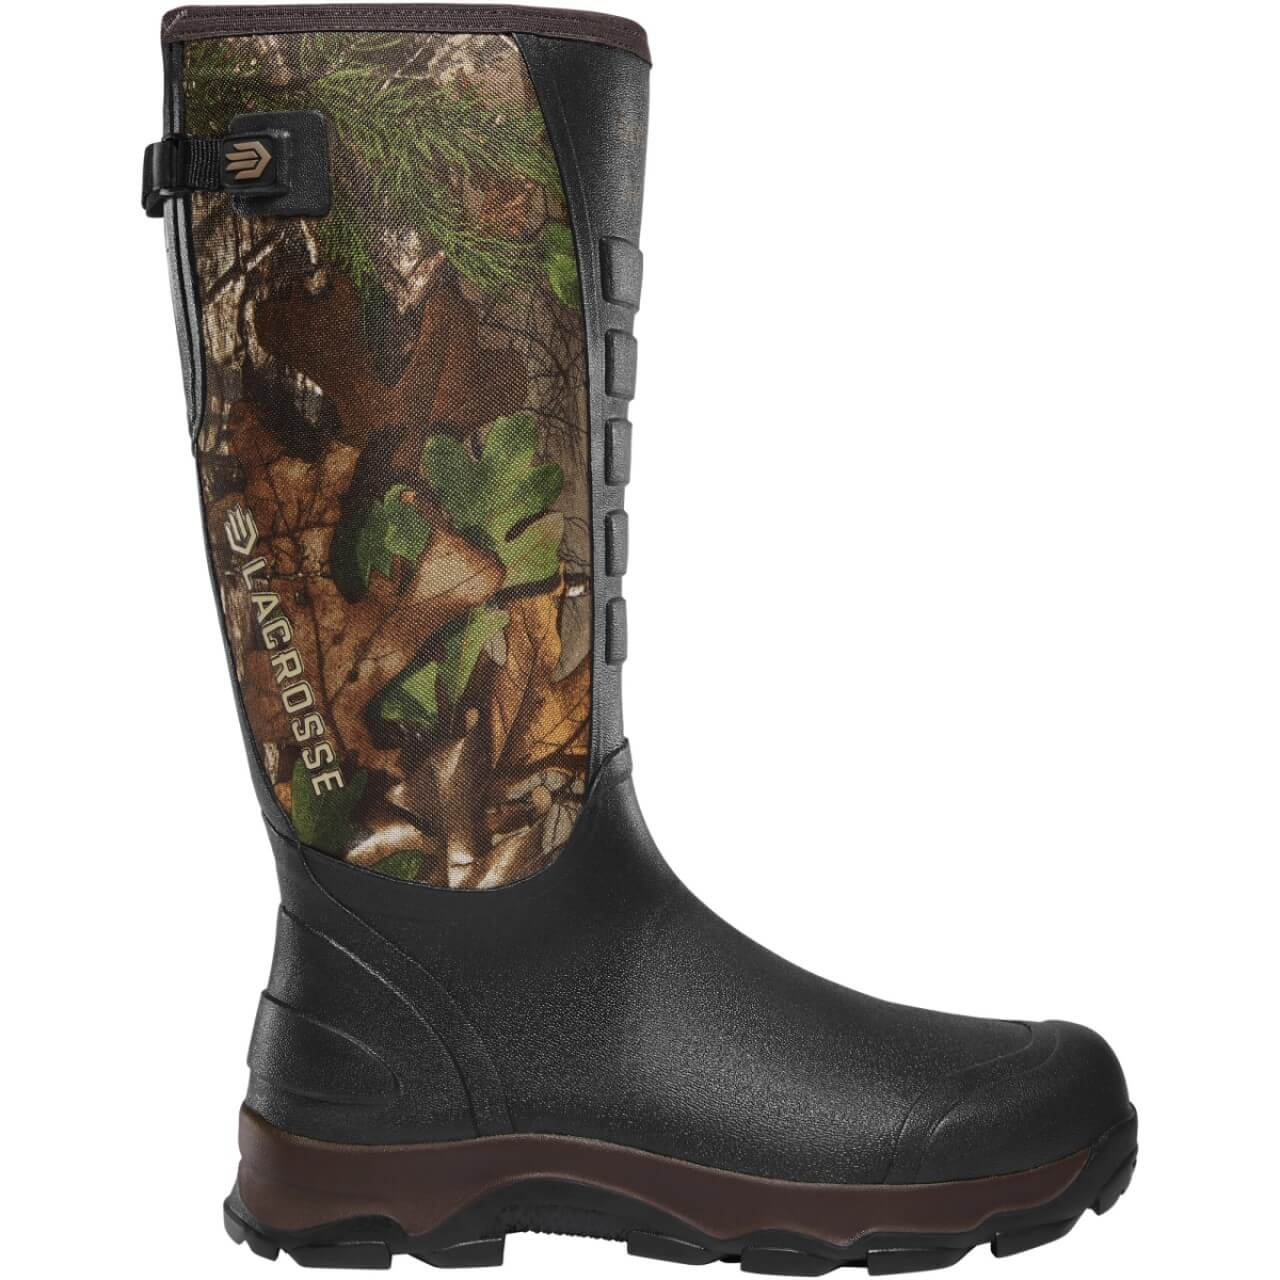 Profile view of the LaCrosse 4x Alpha snake boot for extremely muddy and wet conditions, full heavy-duty rubber boot construction